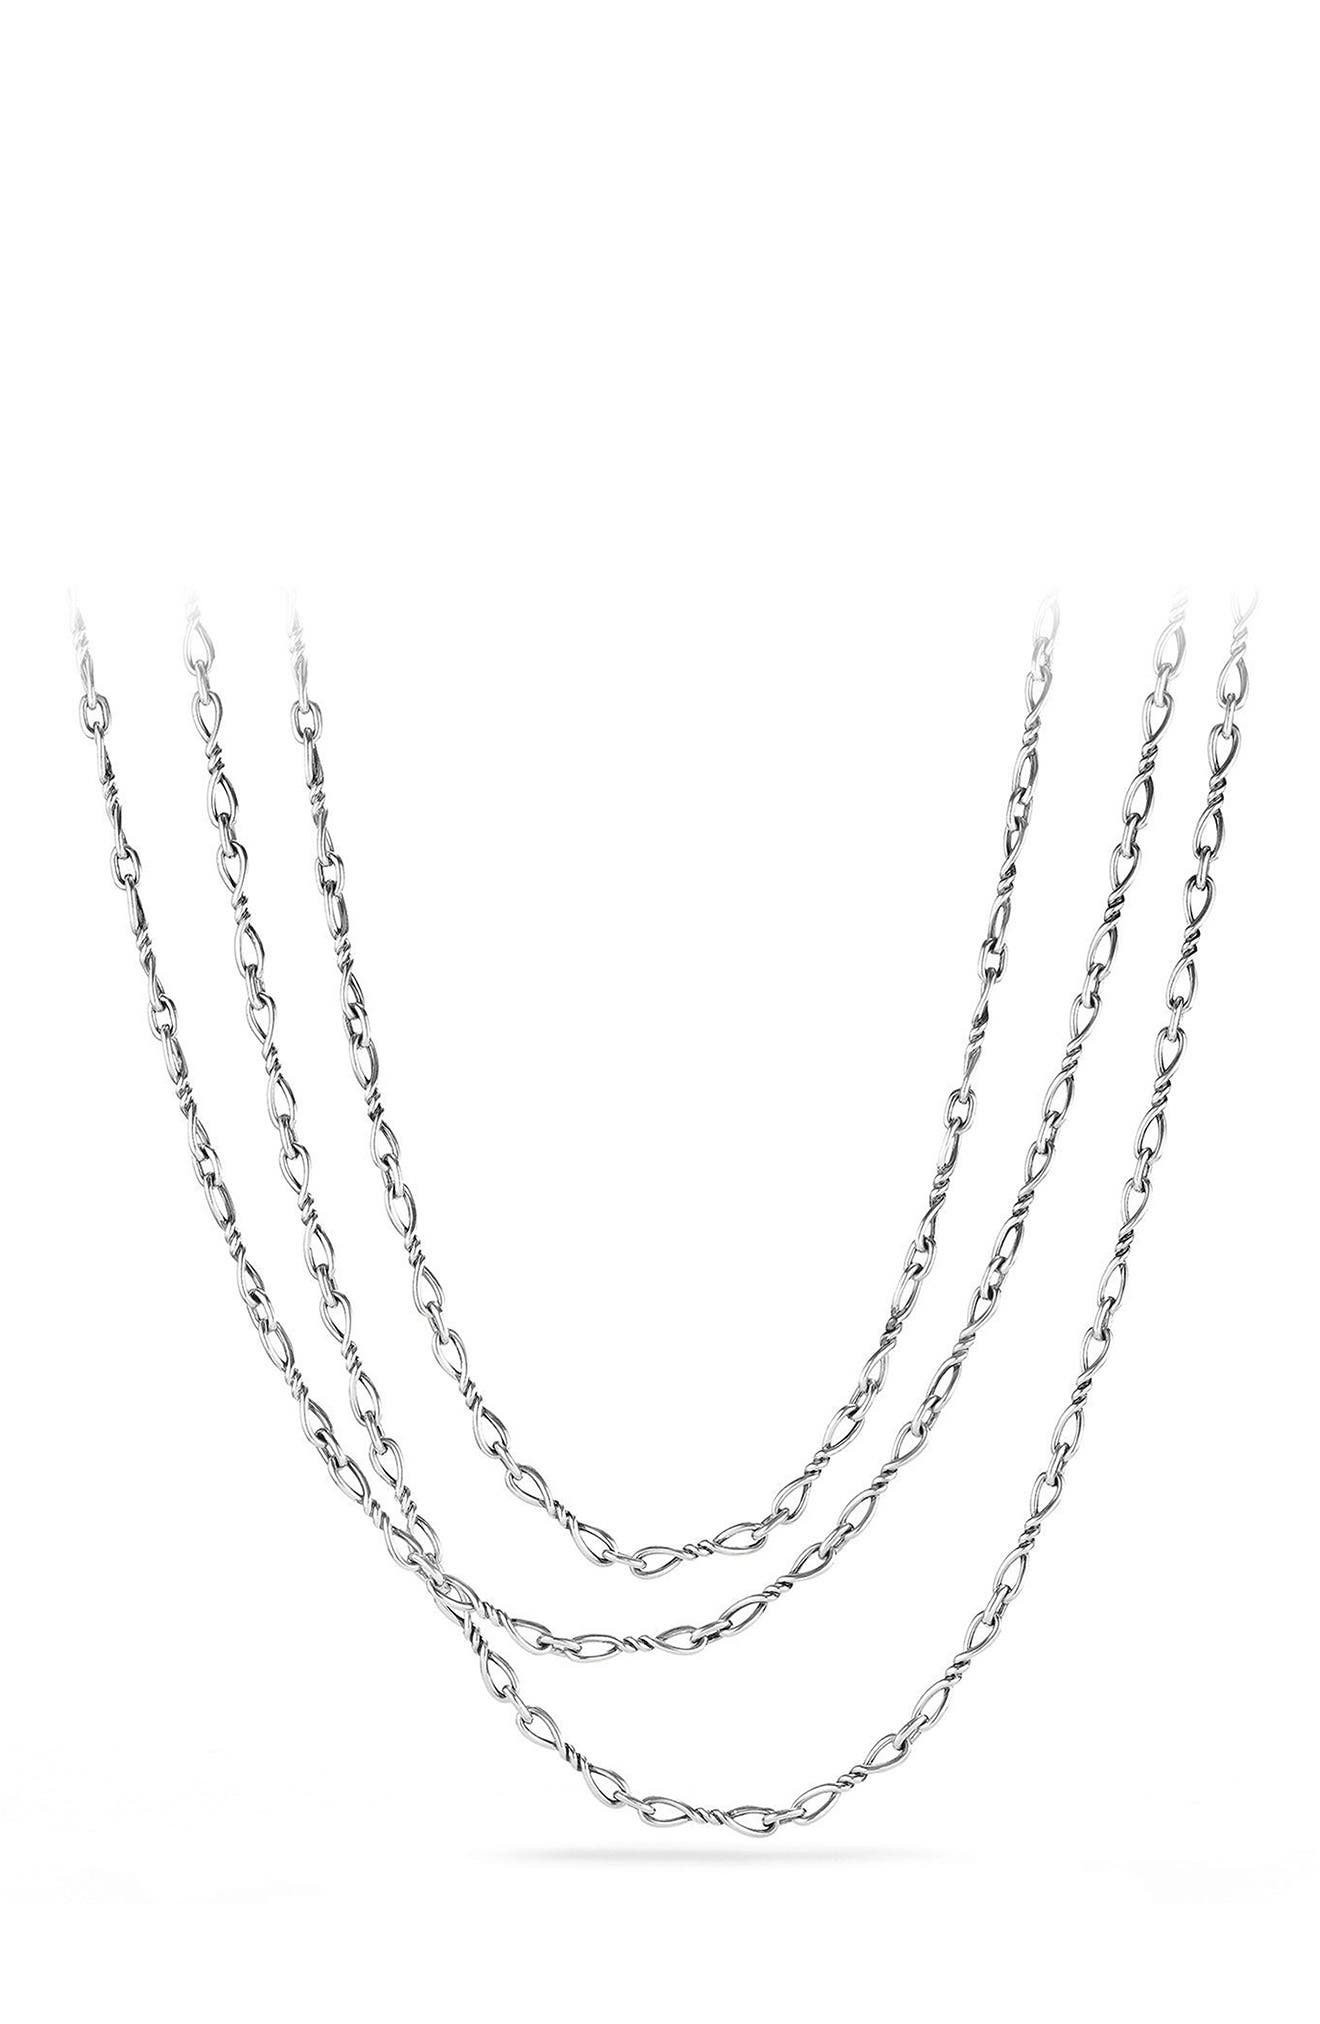 Continuance Chain Necklace,                         Main,                         color, SILVER